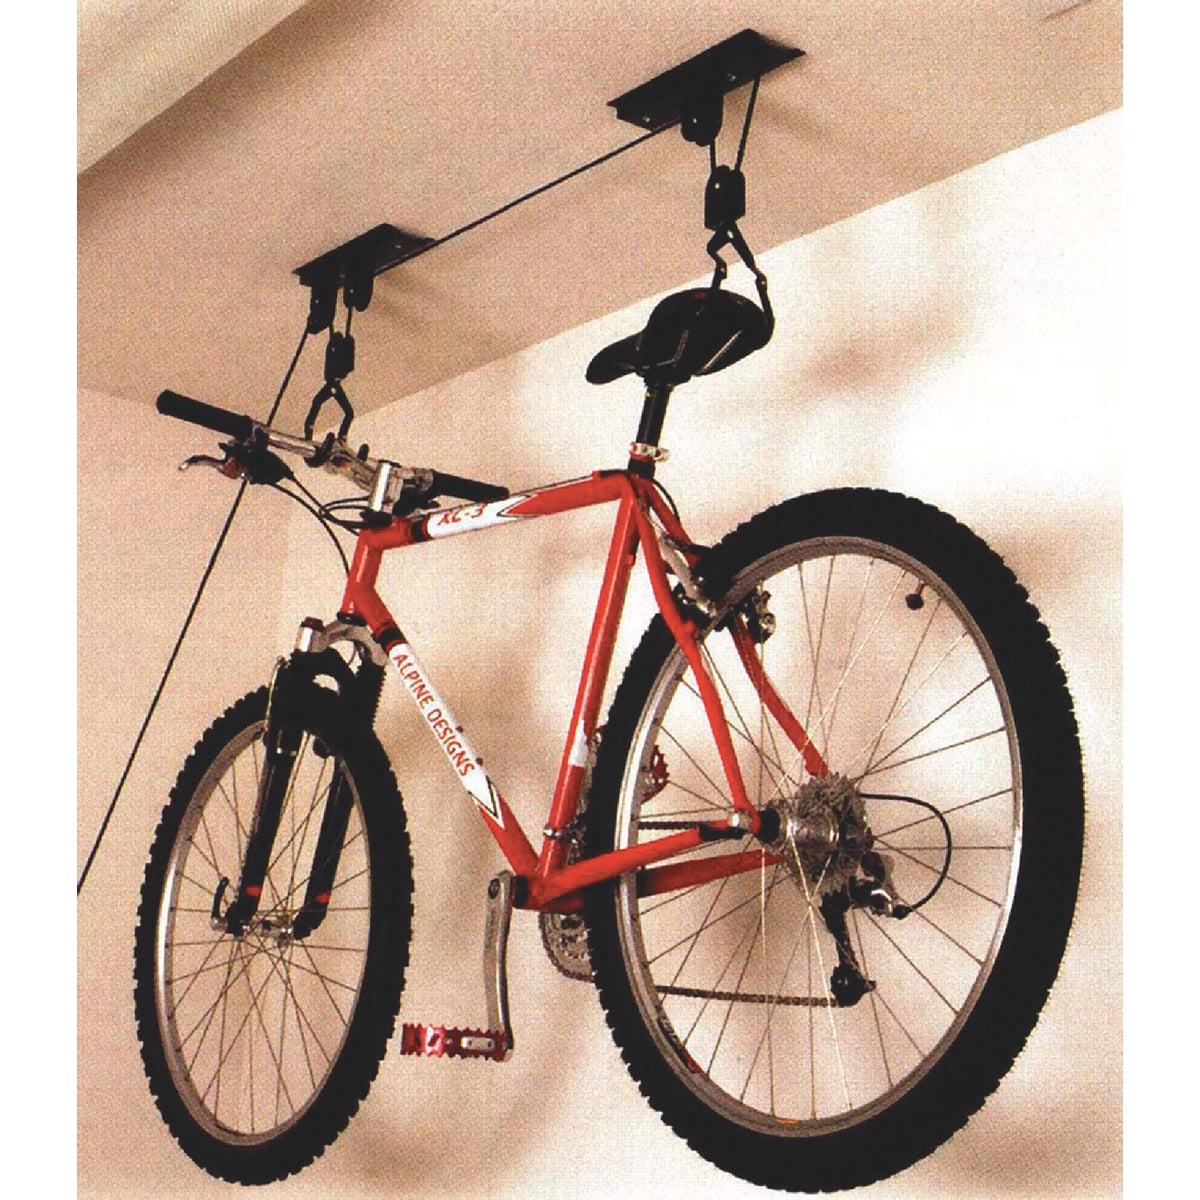 CEILING MOUNT BIKE LIFT - PBH1R by Racor Inc